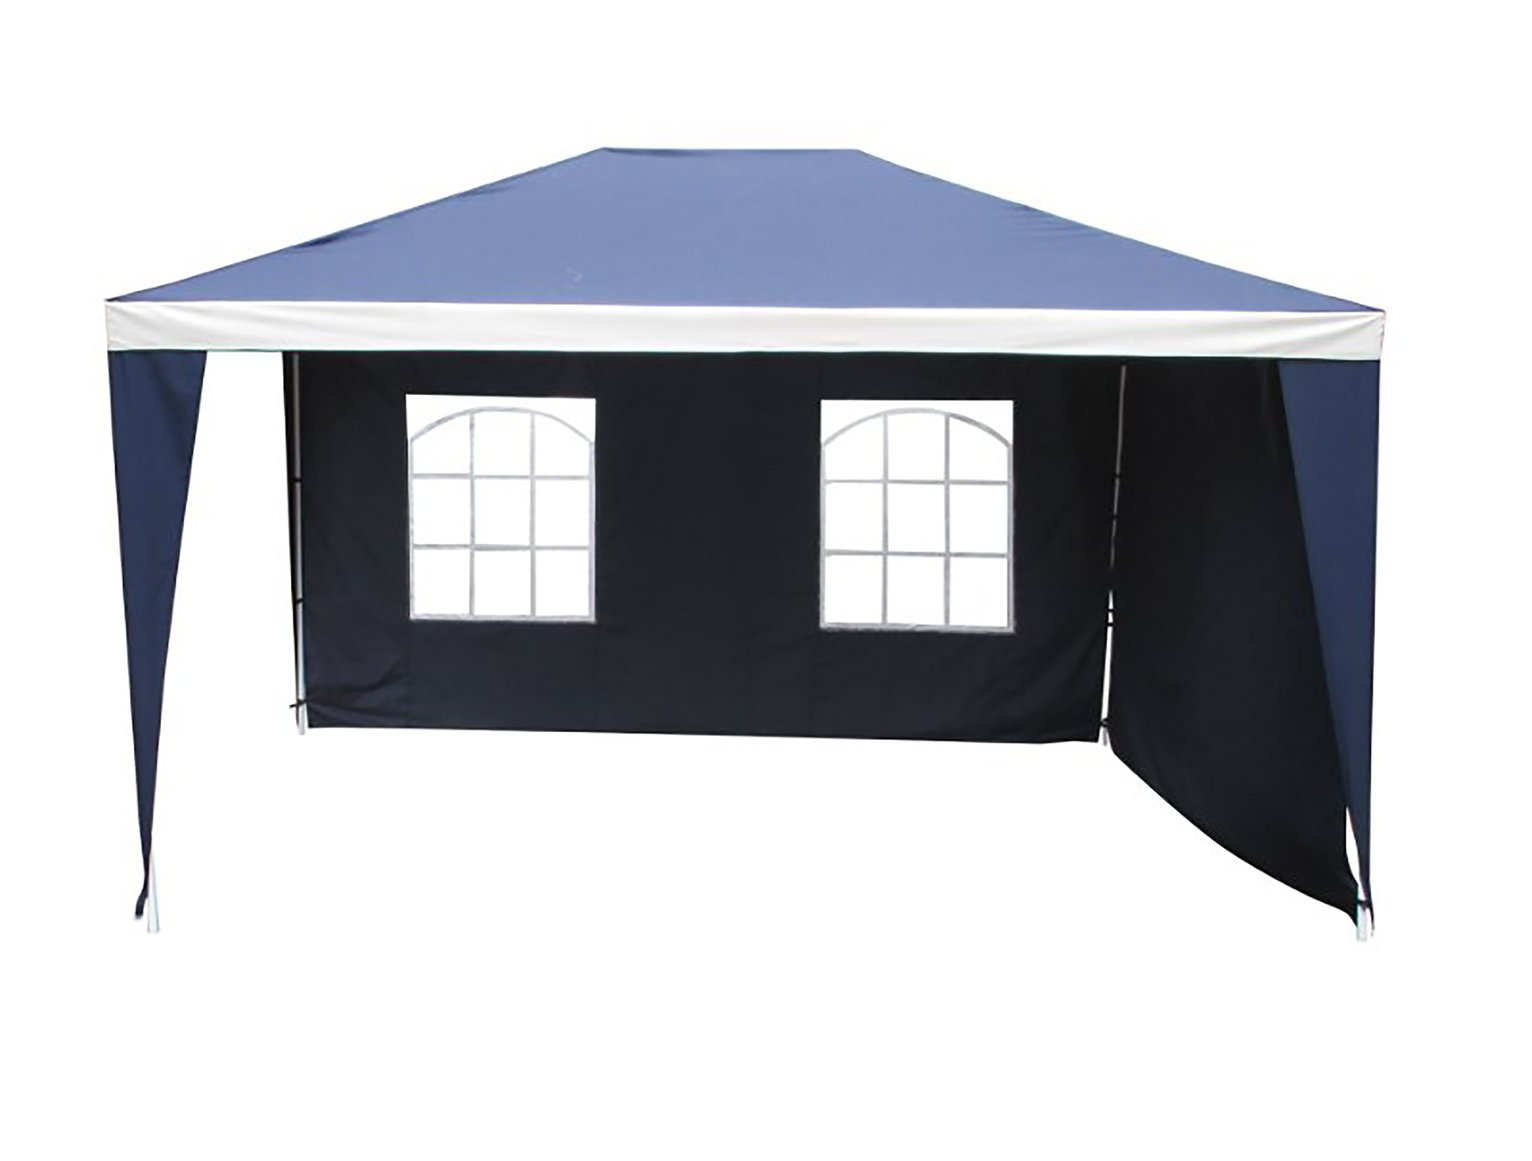 Argos Home 3m x 4m Weather Resistant Gazebo with Side Panels